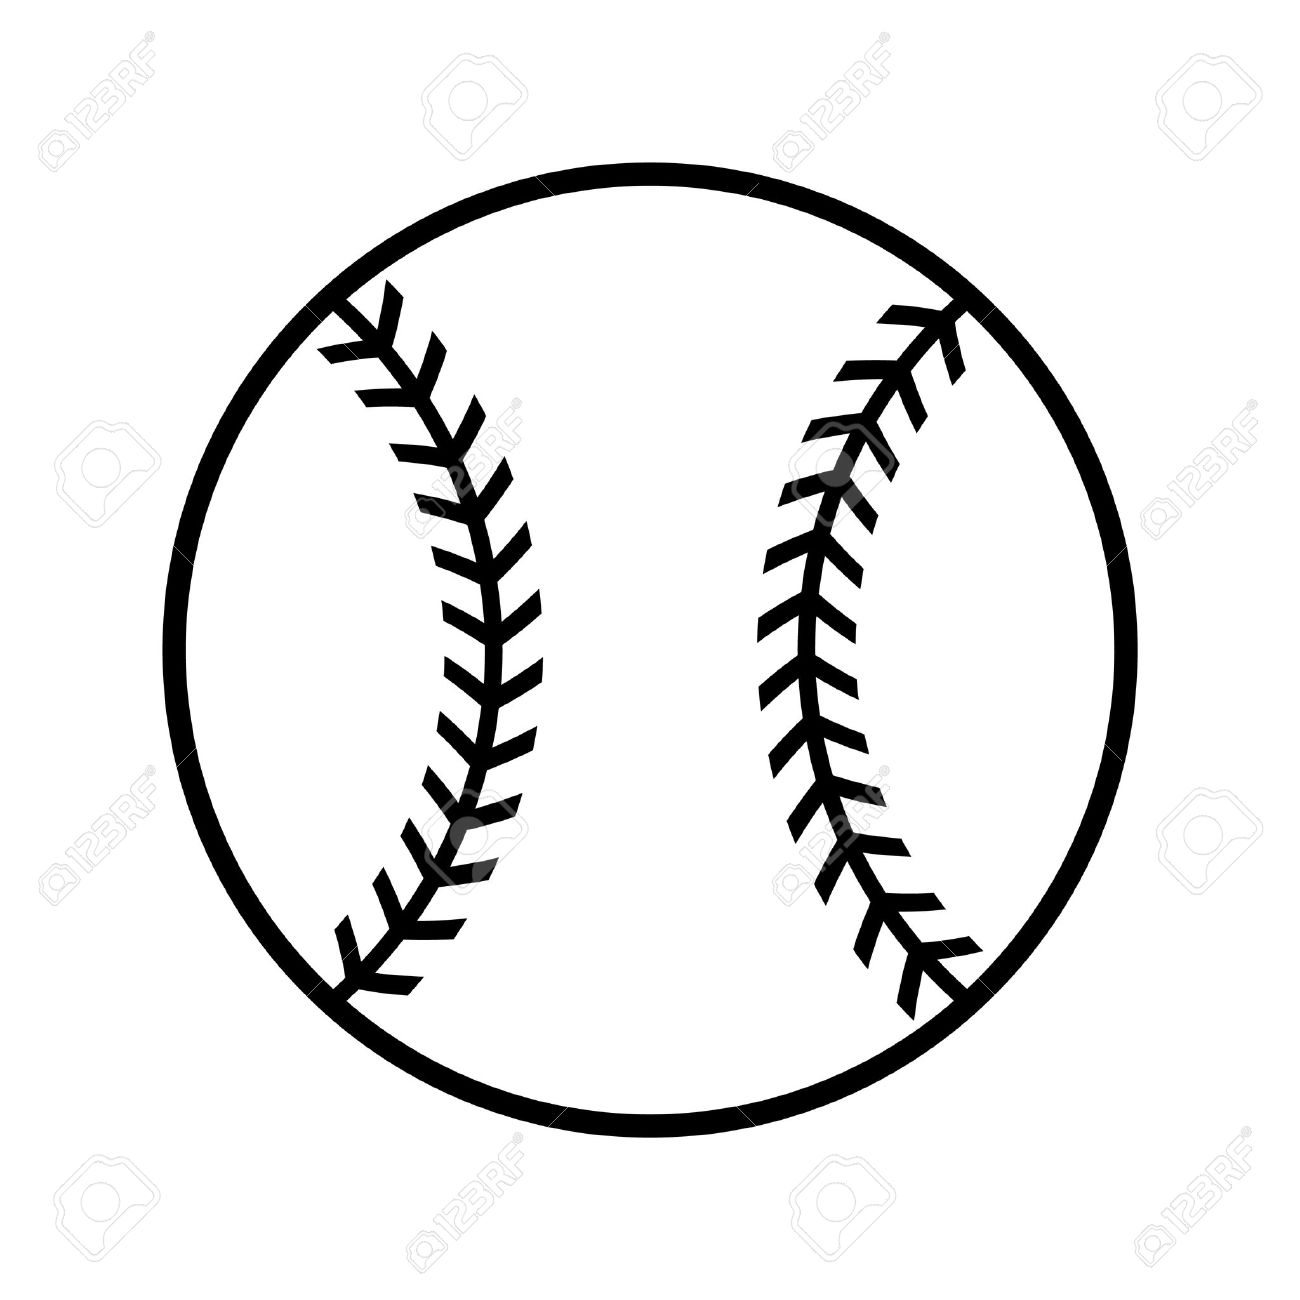 Baseball Vector Icon Royalty Free Cliparts, Vectors, And Stock ...